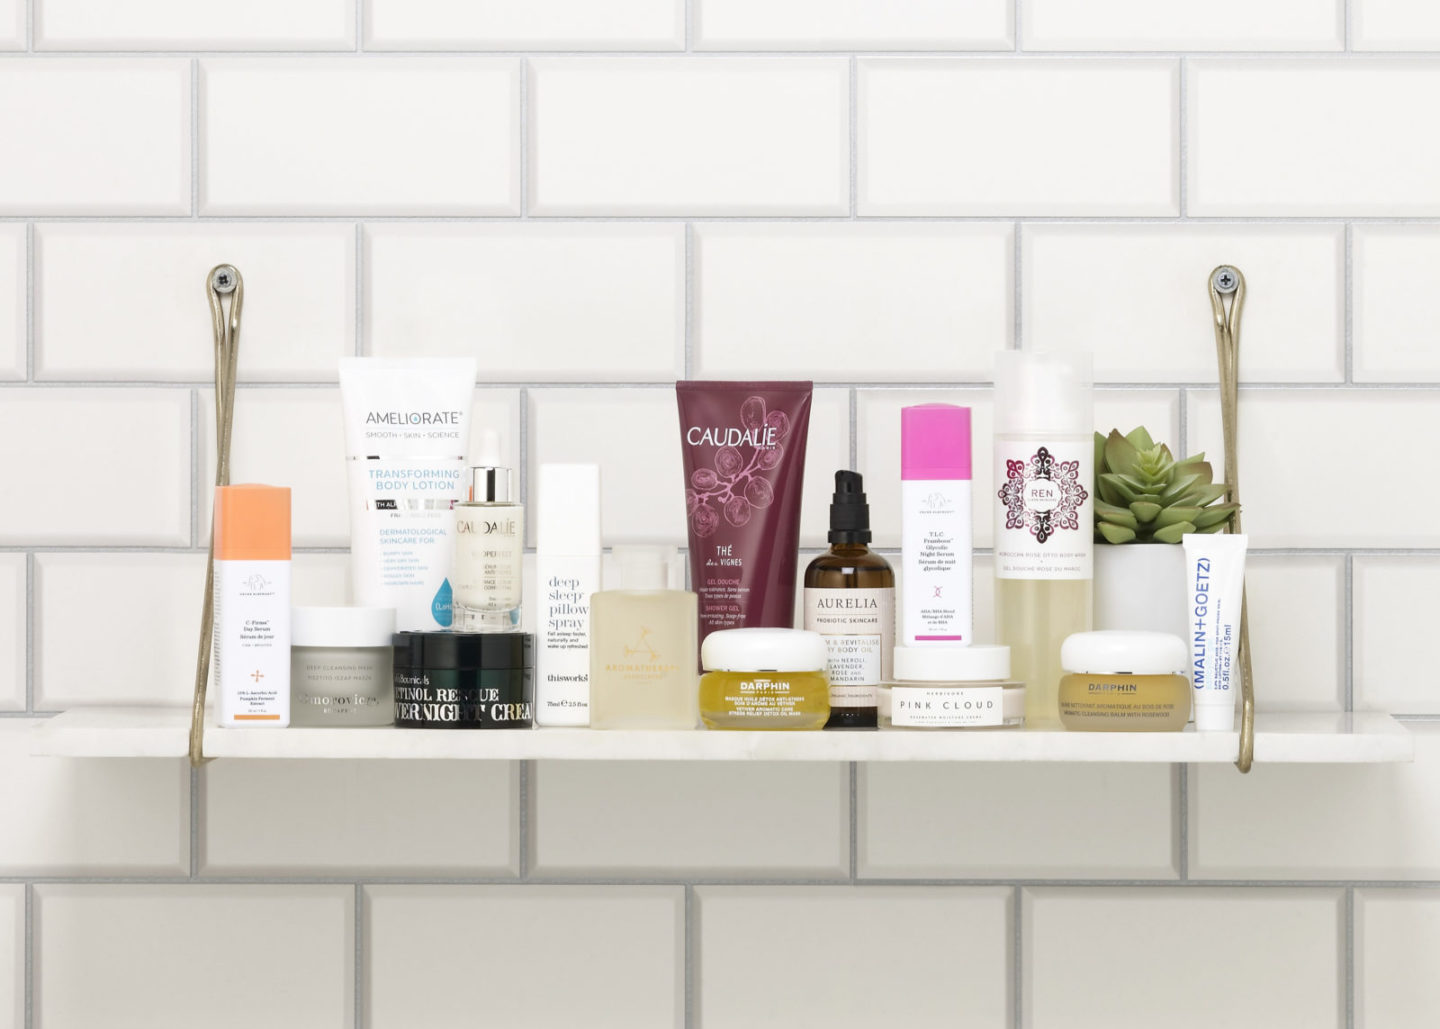 space nk shelfie